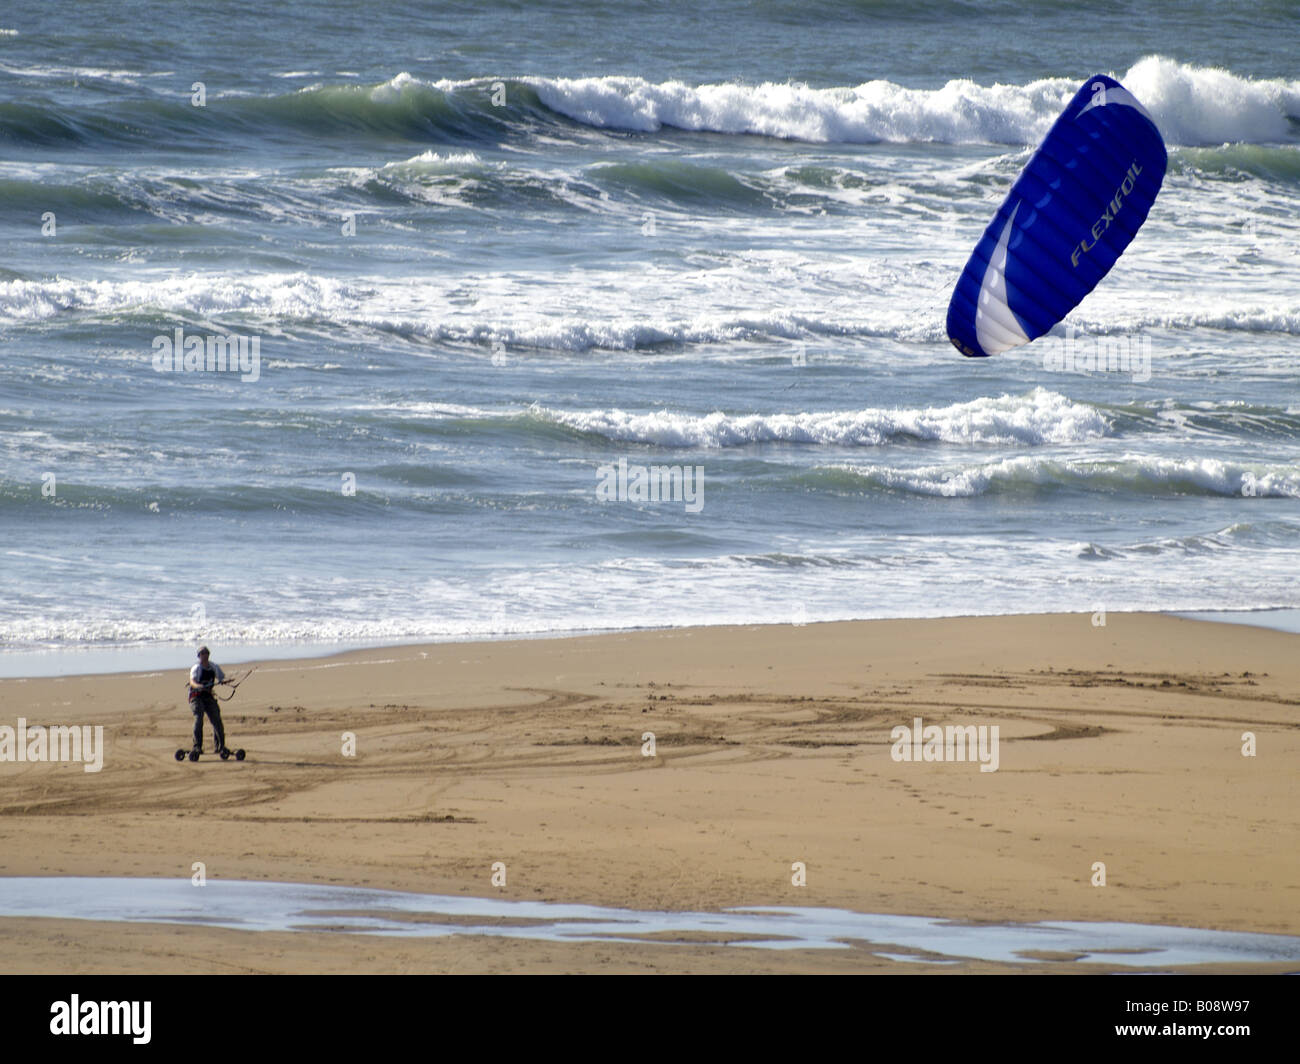 Powerkiter on the smooth sand of Crooklets Beach, Bude, Cornwall, UK Stock Photo